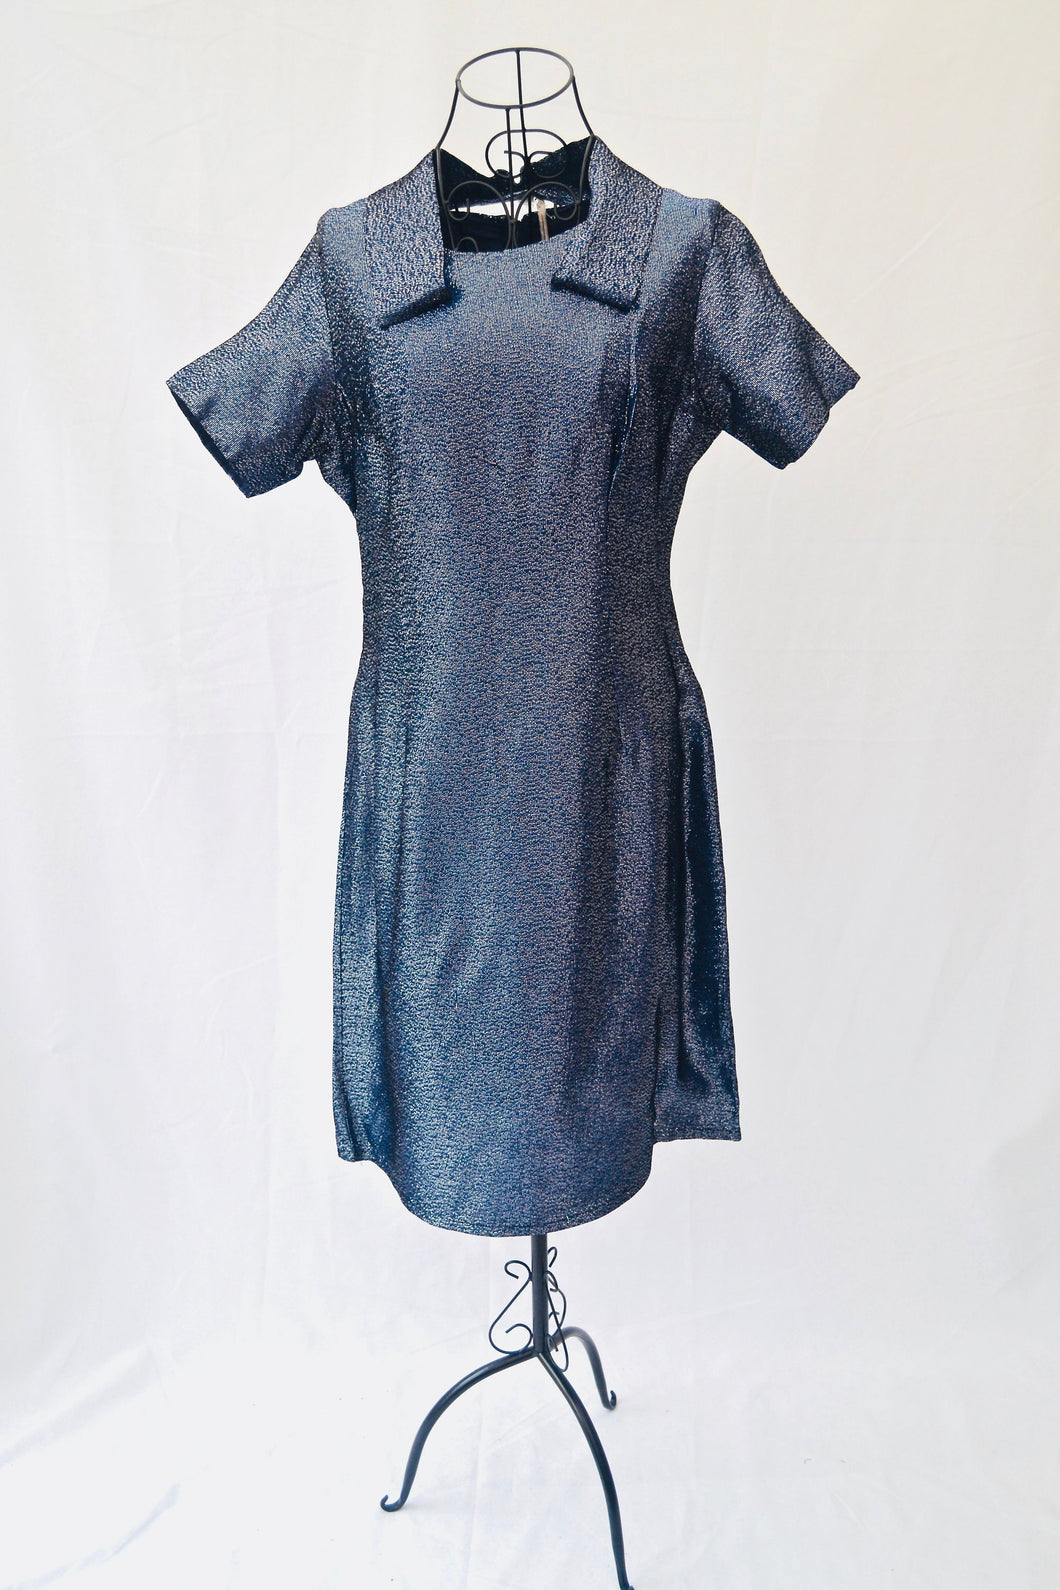 1960s Shift dress | Blue and silver dress | Floating collar |  Est UK size 14